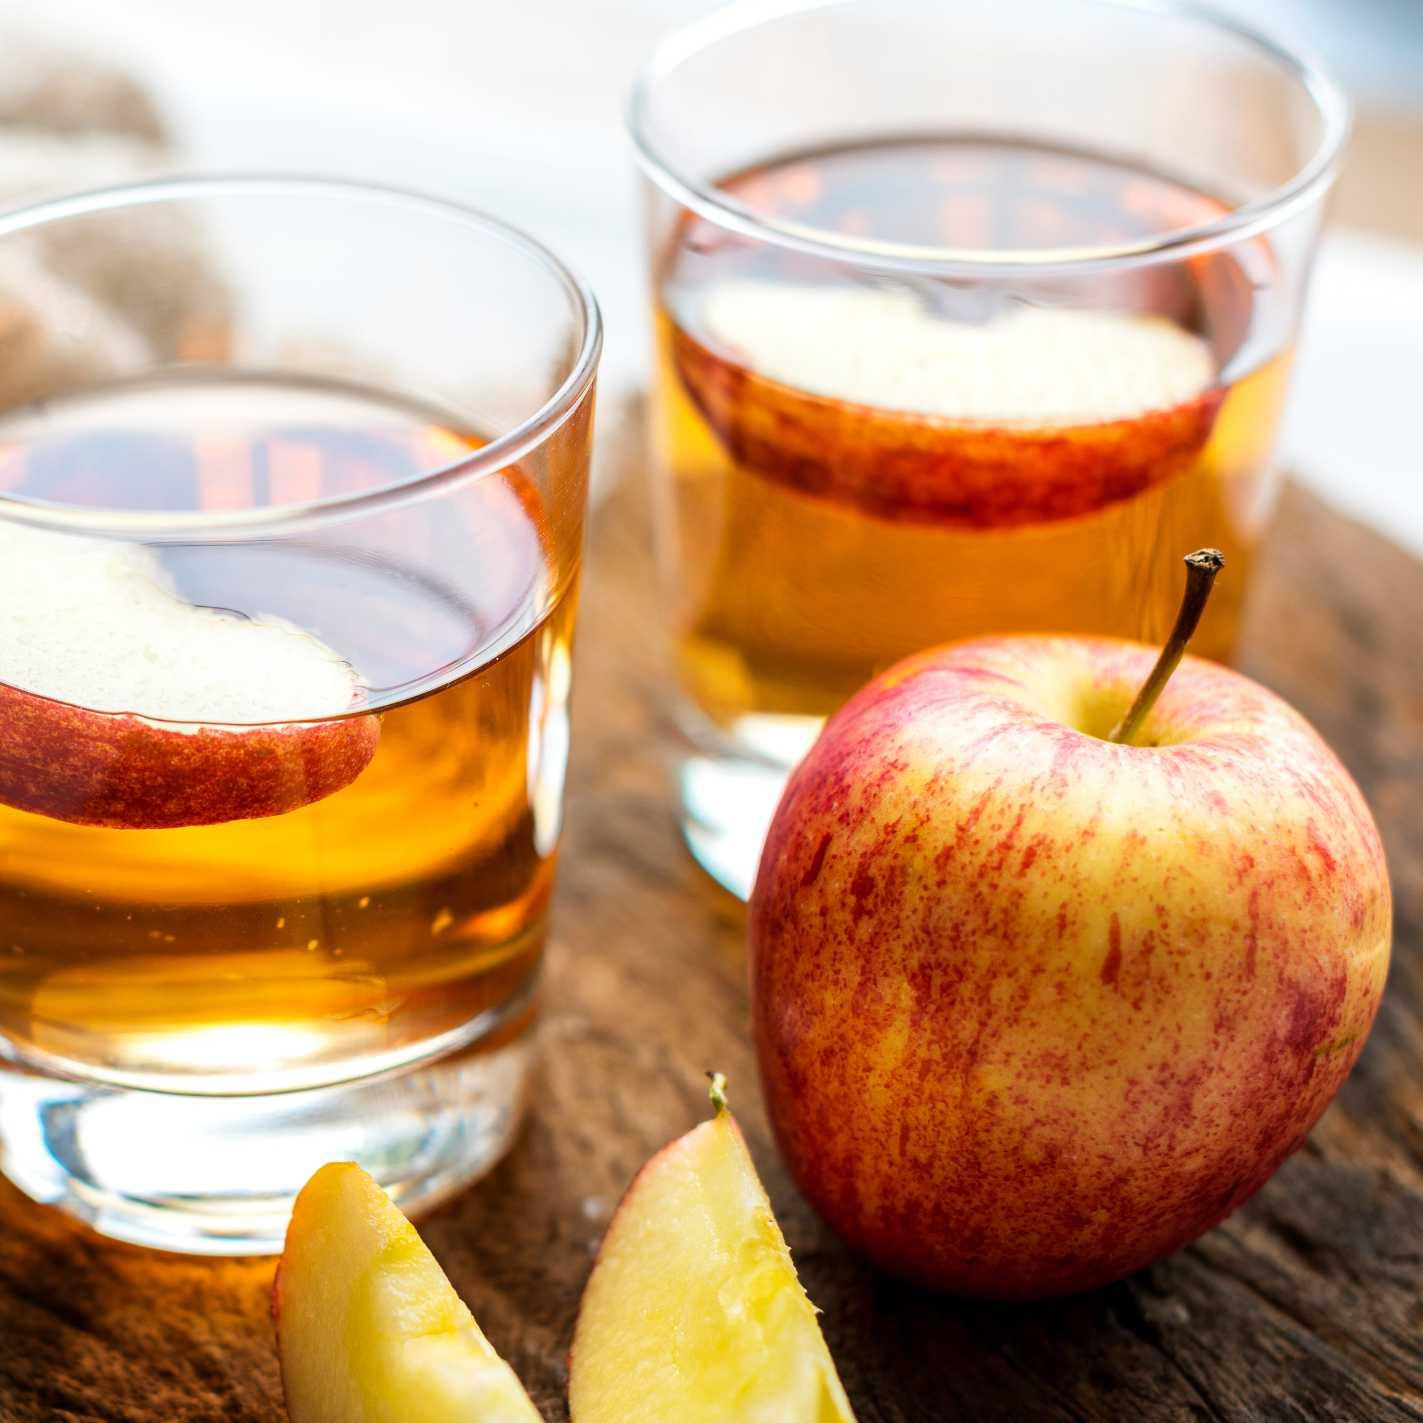 two glasses half filled with an amber liquid with apple slices floating on top. A yellow and red striped apple is near the glasses